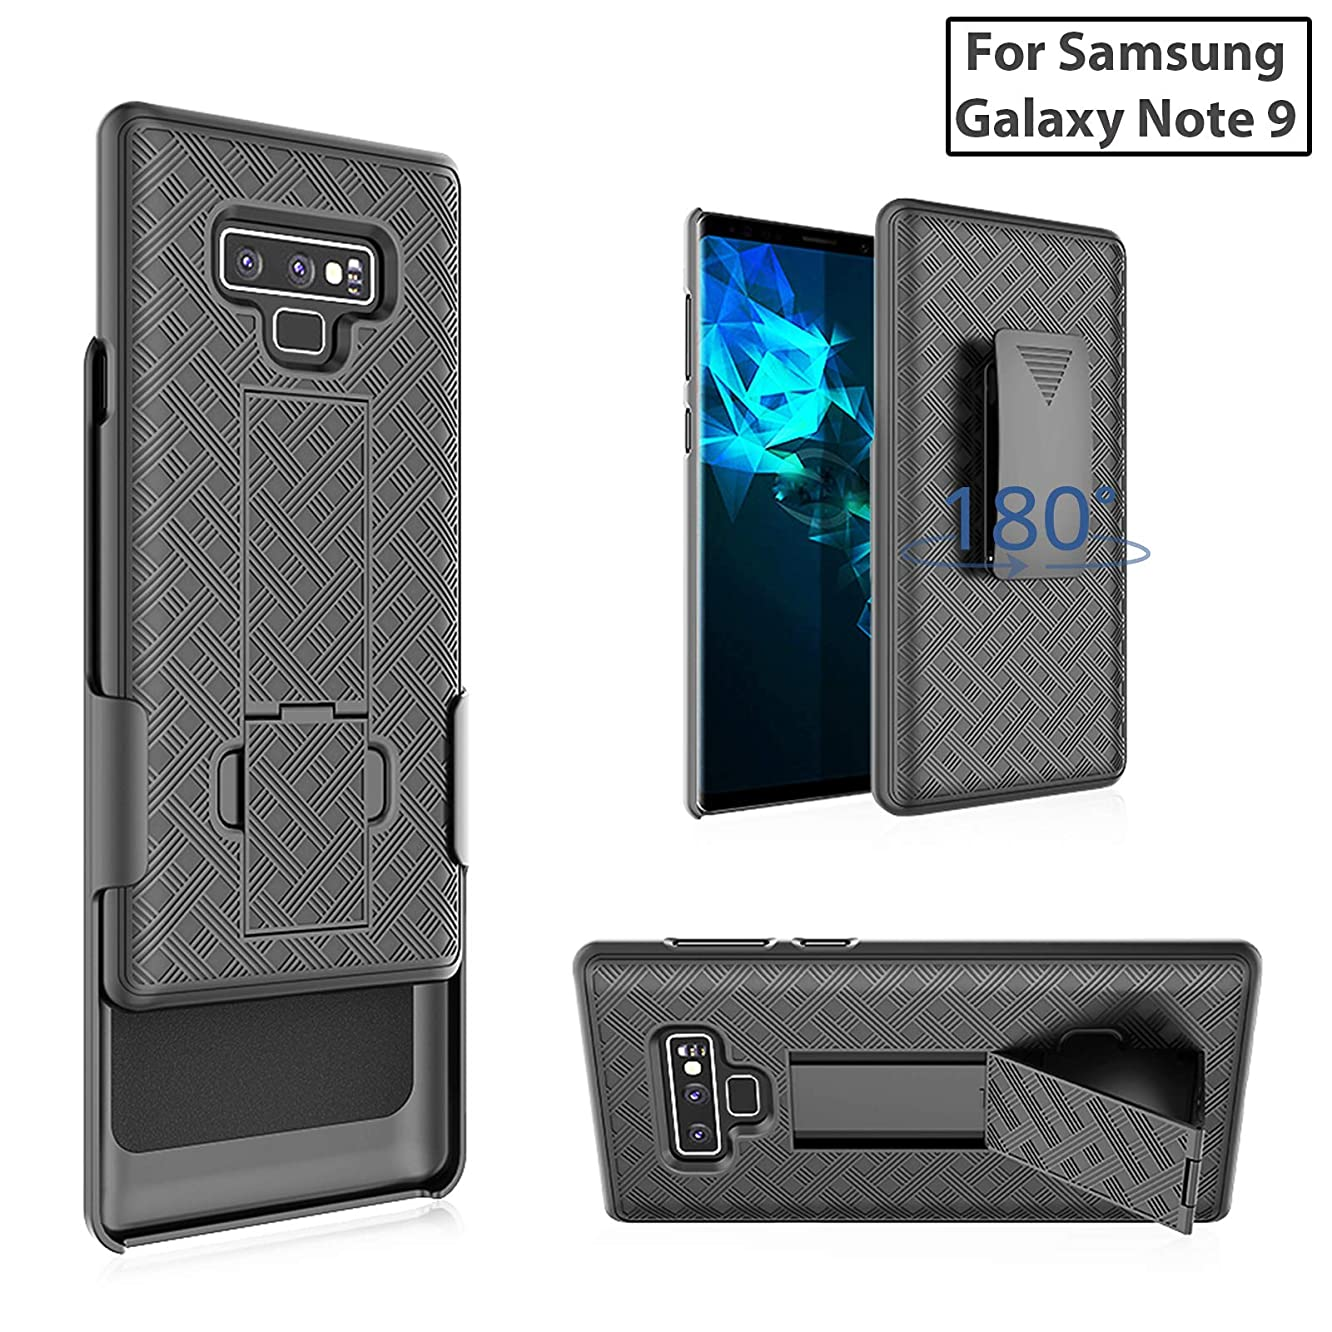 for Samsung Galaxy Note 9 SM-N960U [2018 Release] Rubberized Slim Armor Shell Swivel Hybrid Holster Defender Combo Case with Belt Clip & Kickstand for Note 9